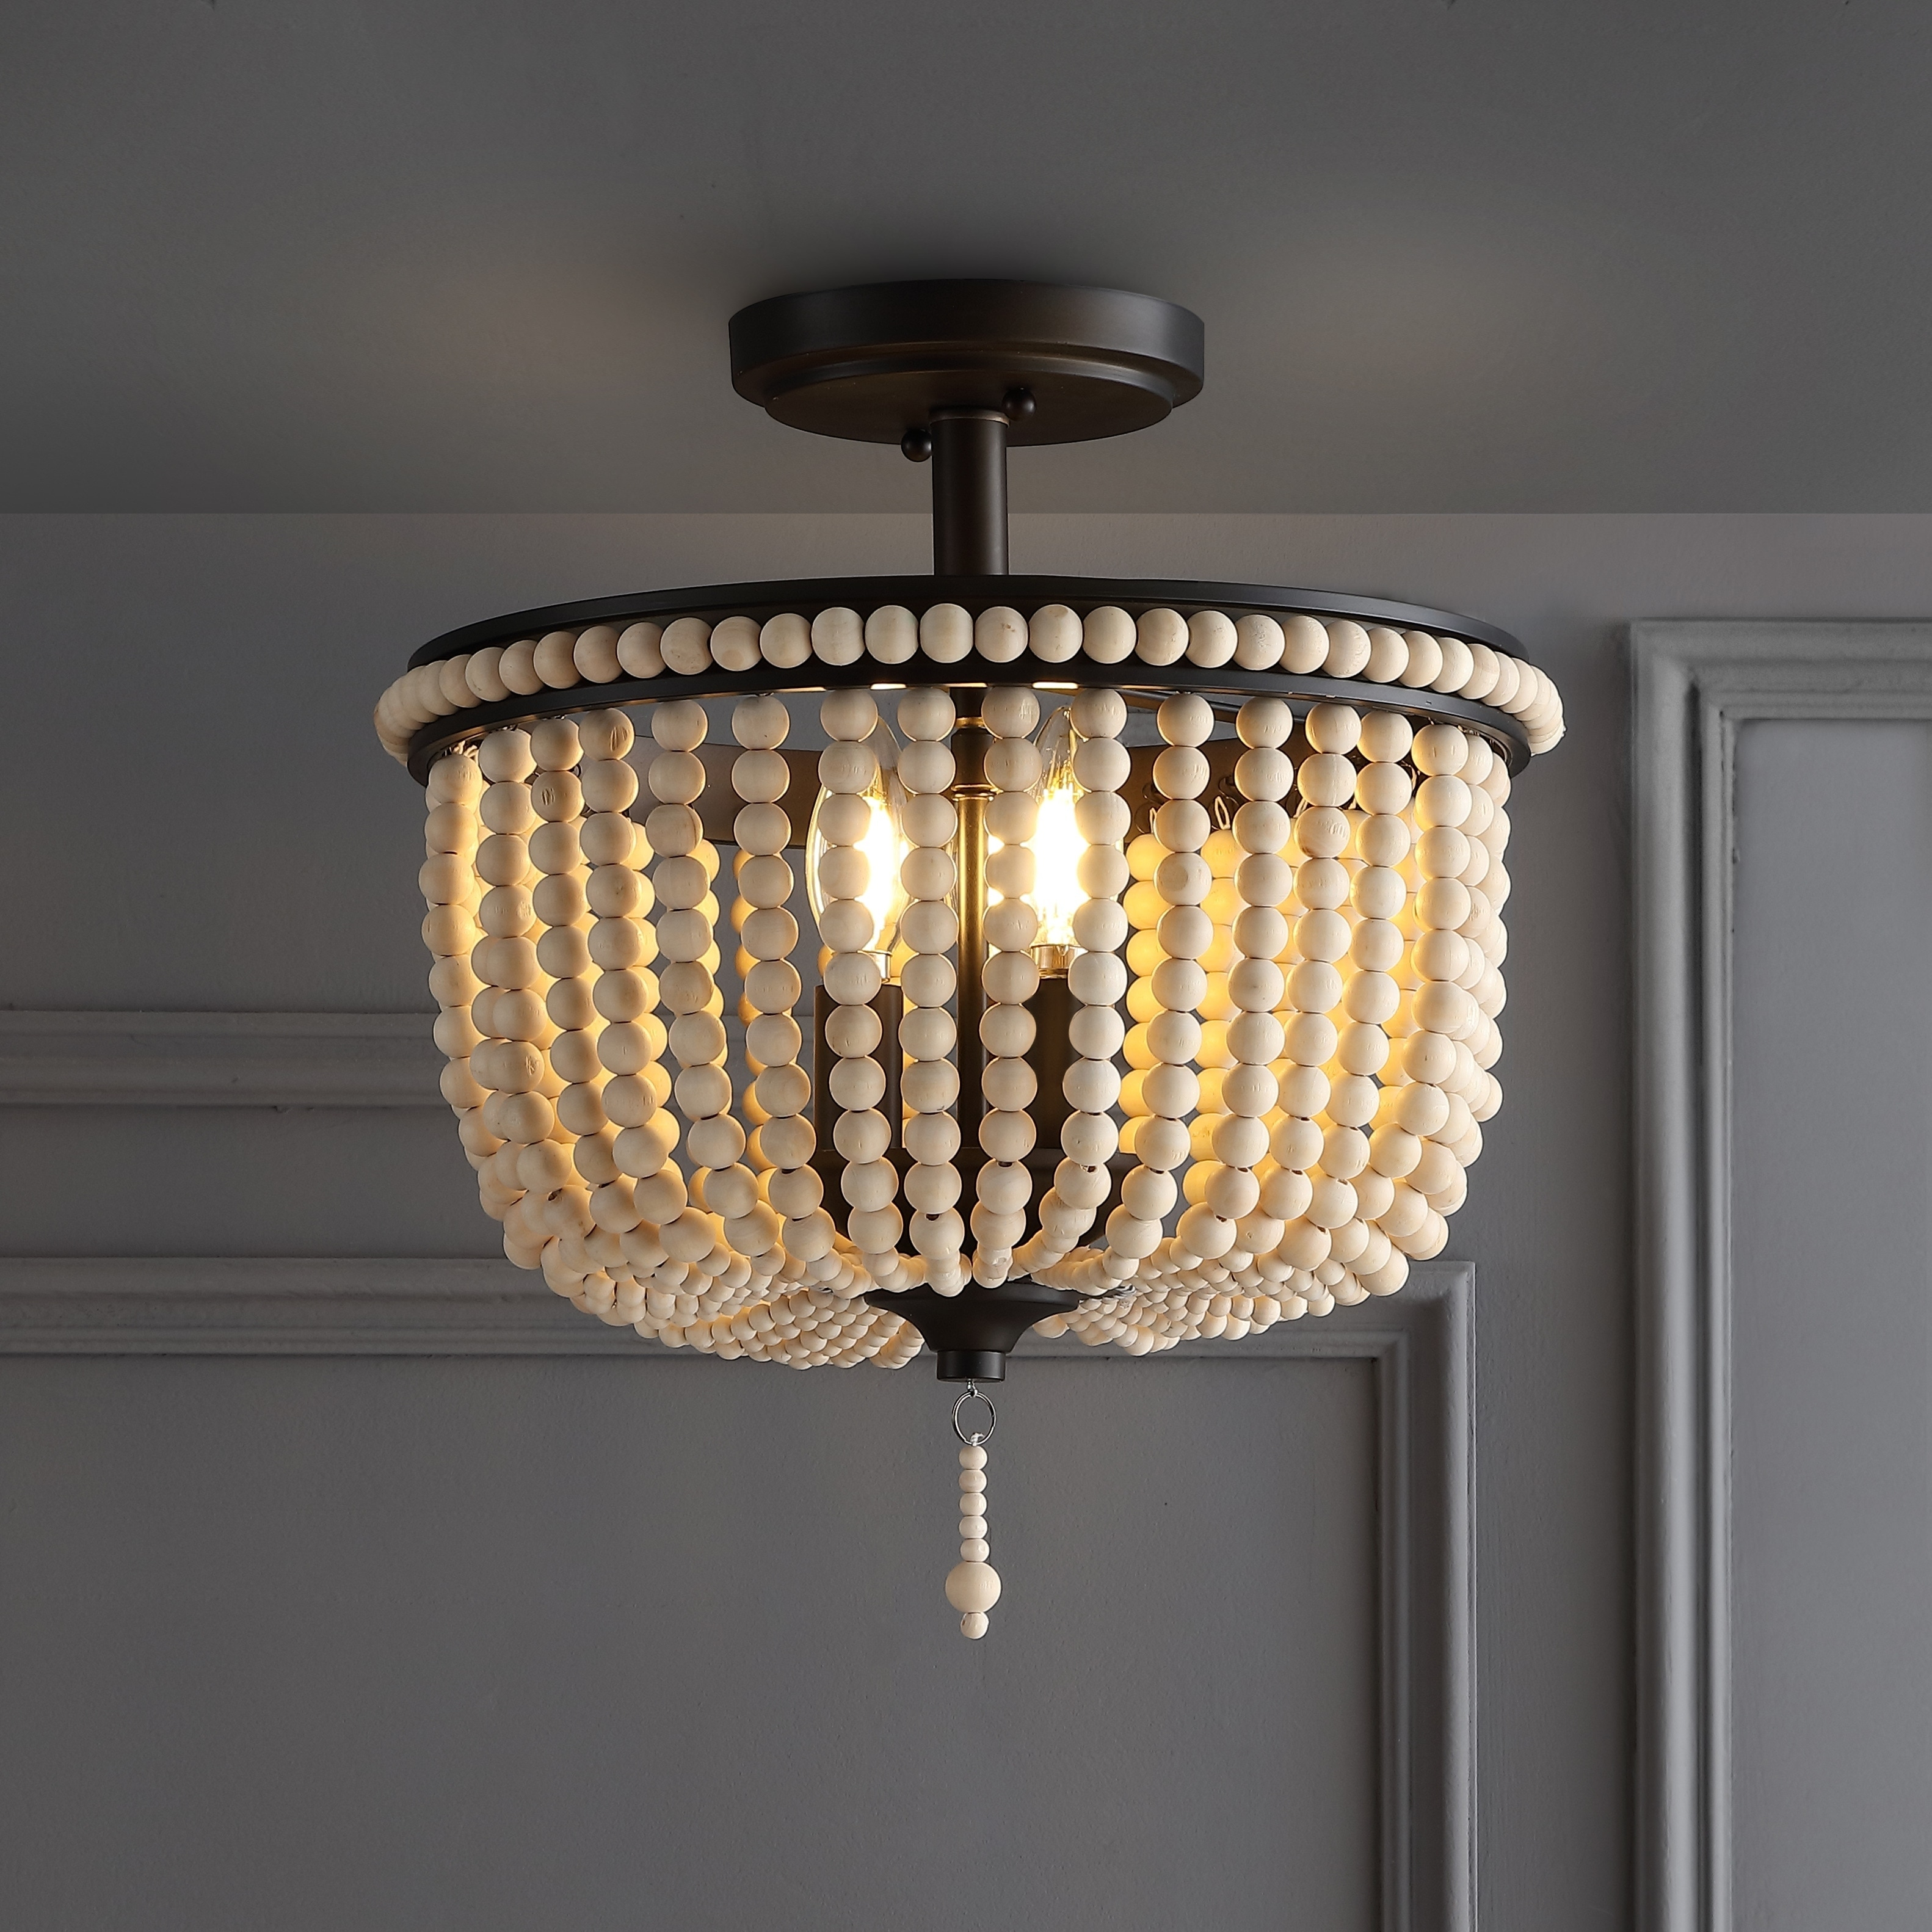 21bd33f5e Entryway Ceiling Lighting | Shop our Best Lighting & Ceiling Fans Deals  Online at Overstock